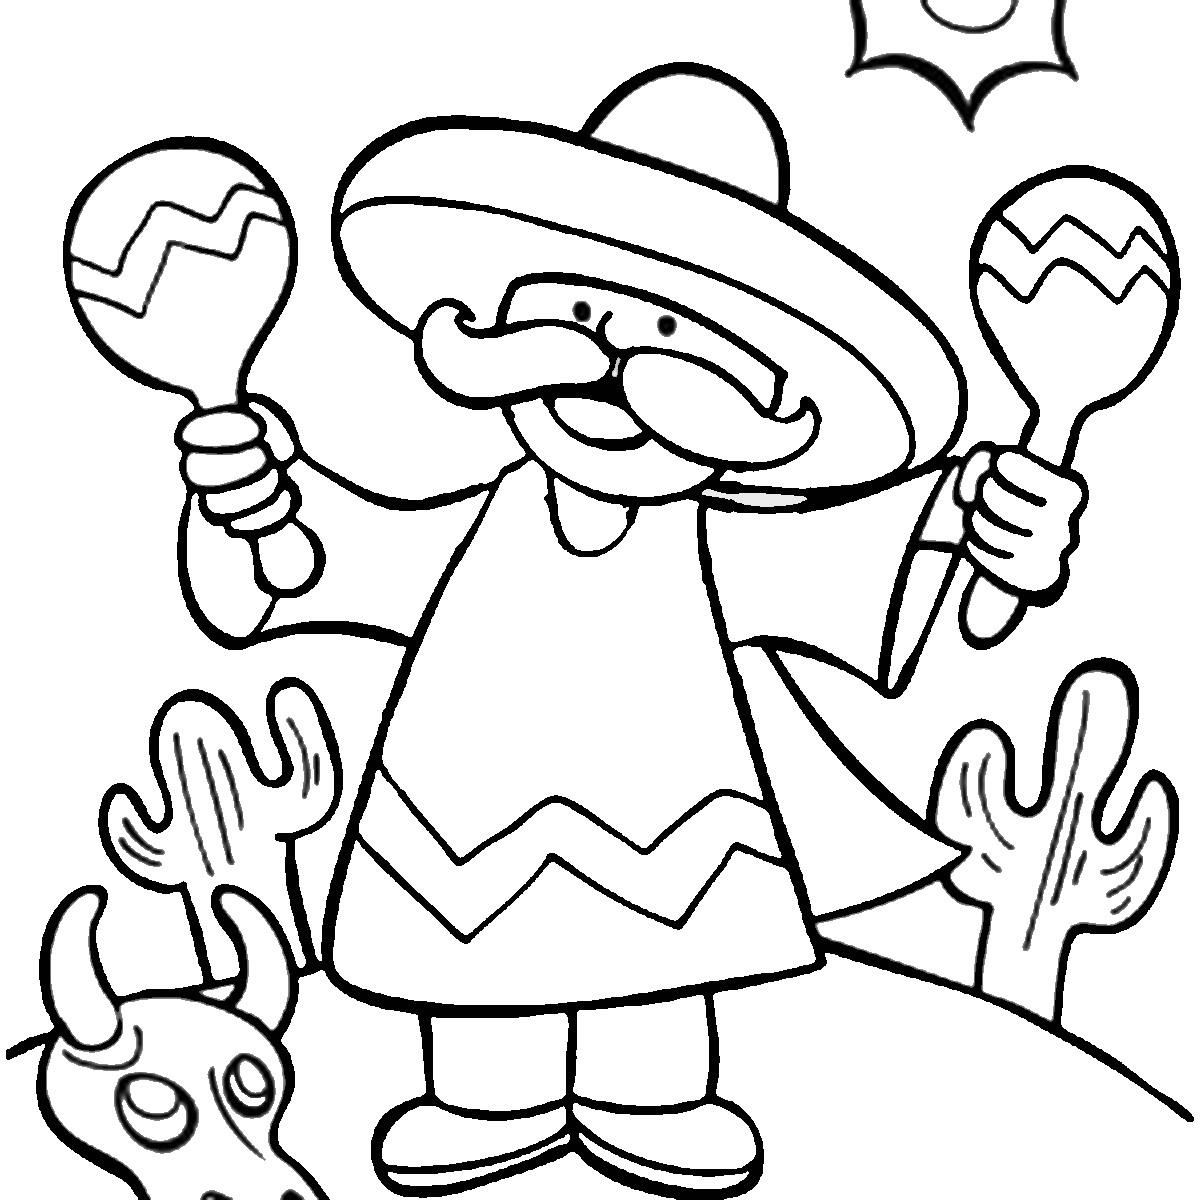 5 De Mayo Coloring Pages